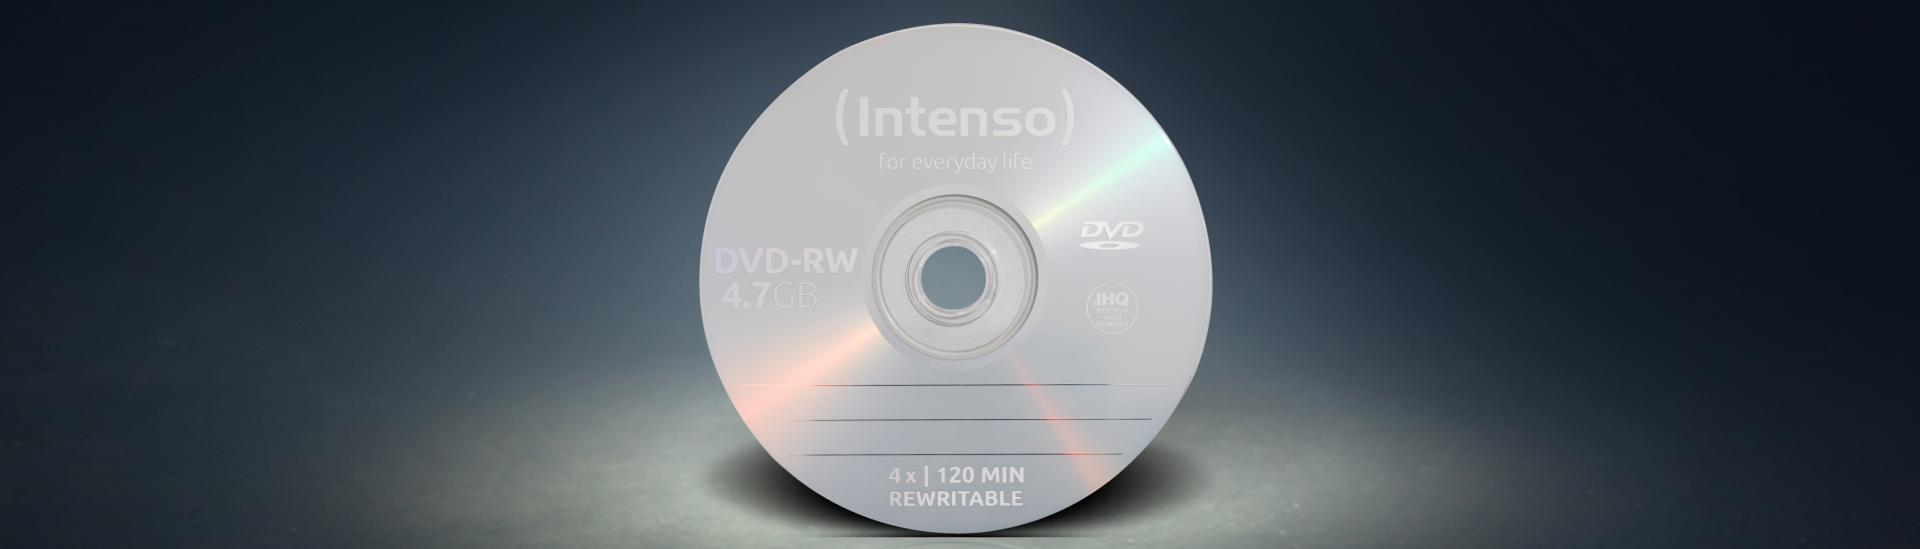 graphic about Printable Dvd Rohlinge known as Rohlinge Intenso